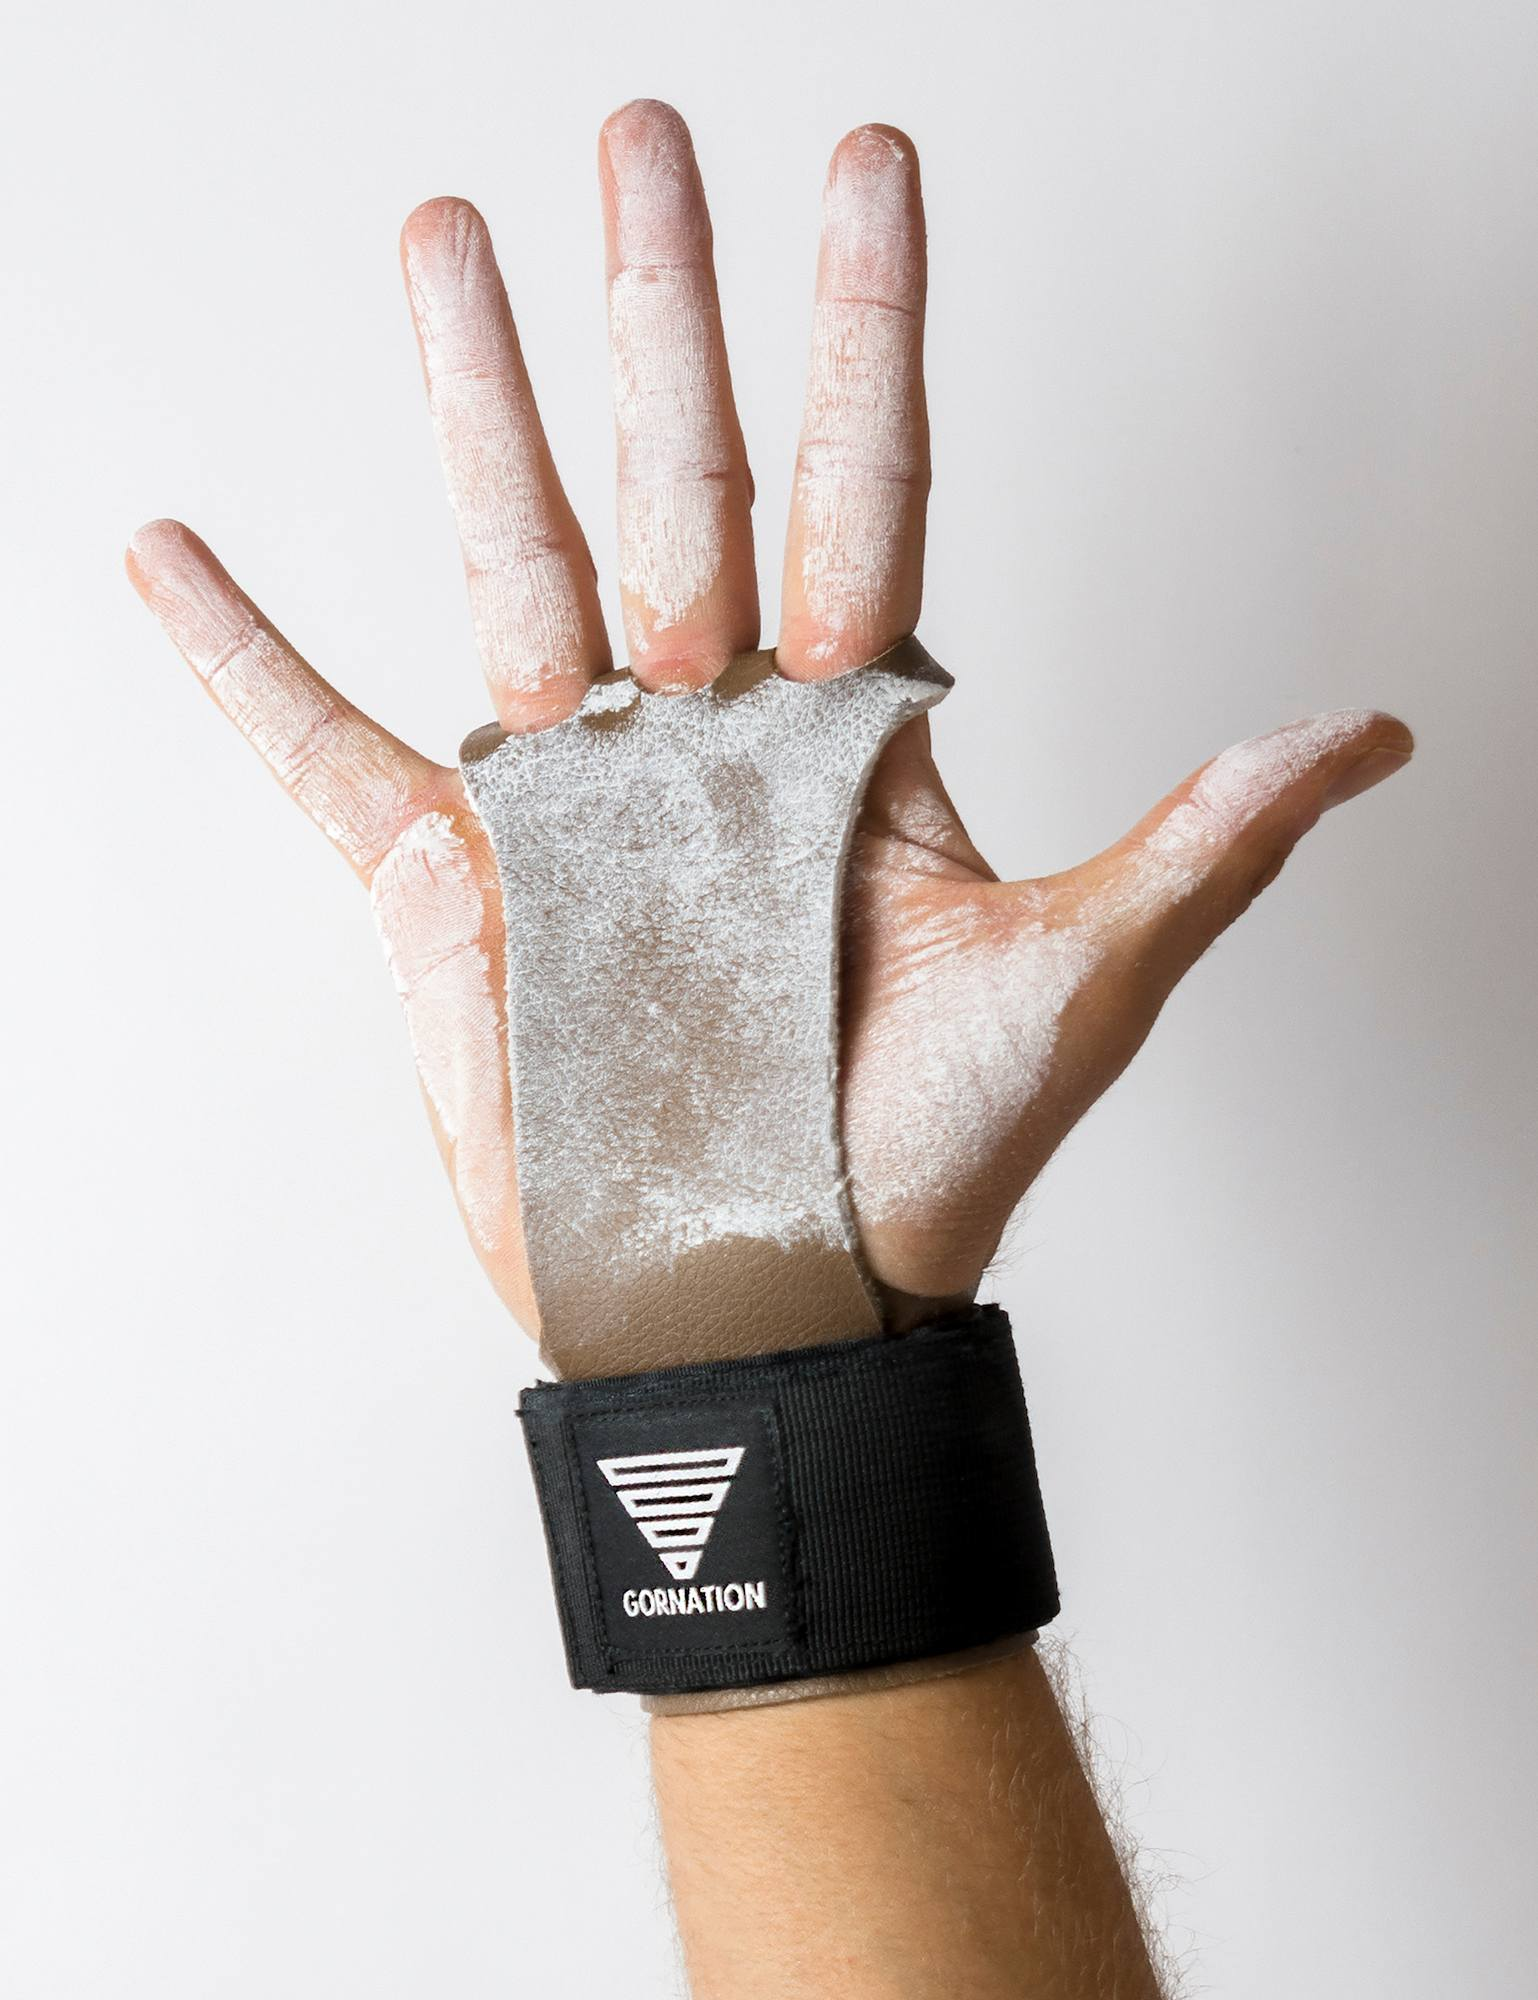 Workout Grips, Brown Leather and Black Wrist Wrap